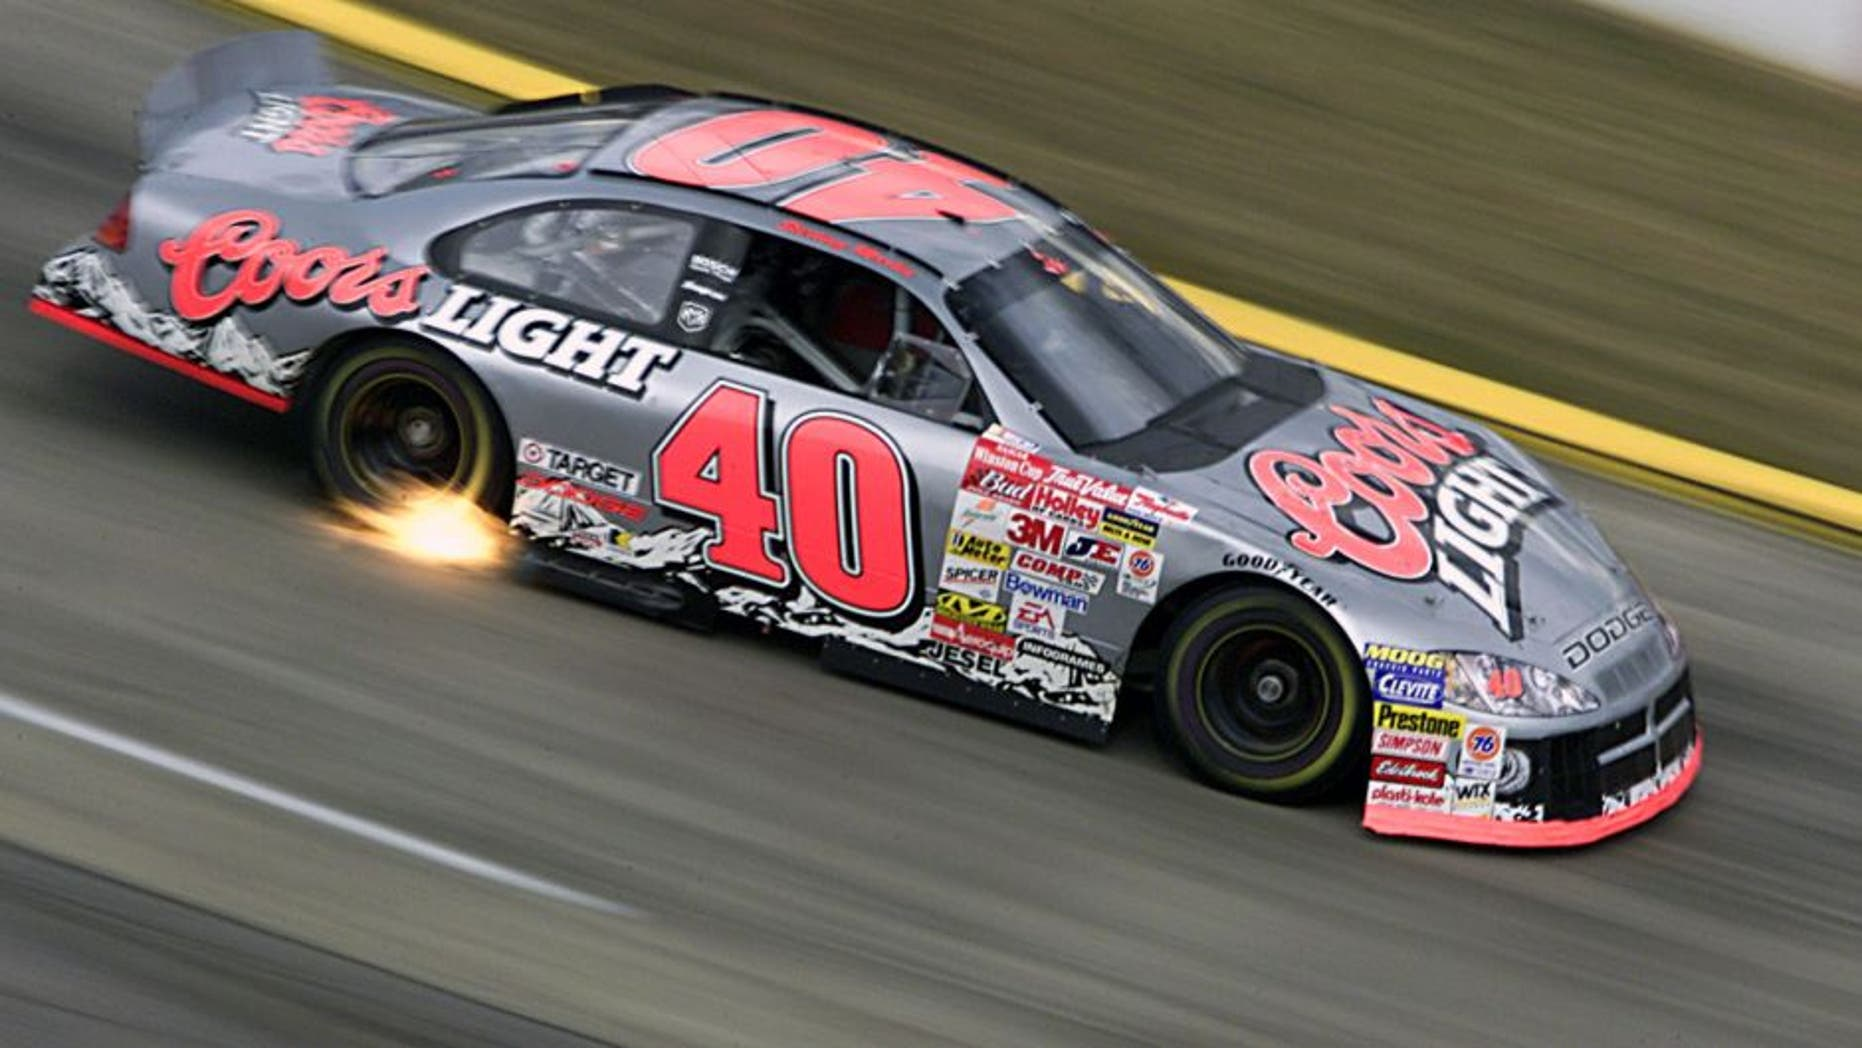 15 Oct 2001: Sterling Marlin catches speed and some fire as he drives the #40 Gnassi Racing Dodge Intrepid R/T during the Old Dominion 500, part of the Winston Cup Nascar Series race at Martinsville Speedway in Martinsville, Virginia. DIGITAL IMAGE Mandatory Credit: Donald Miralle/ALLSPORT